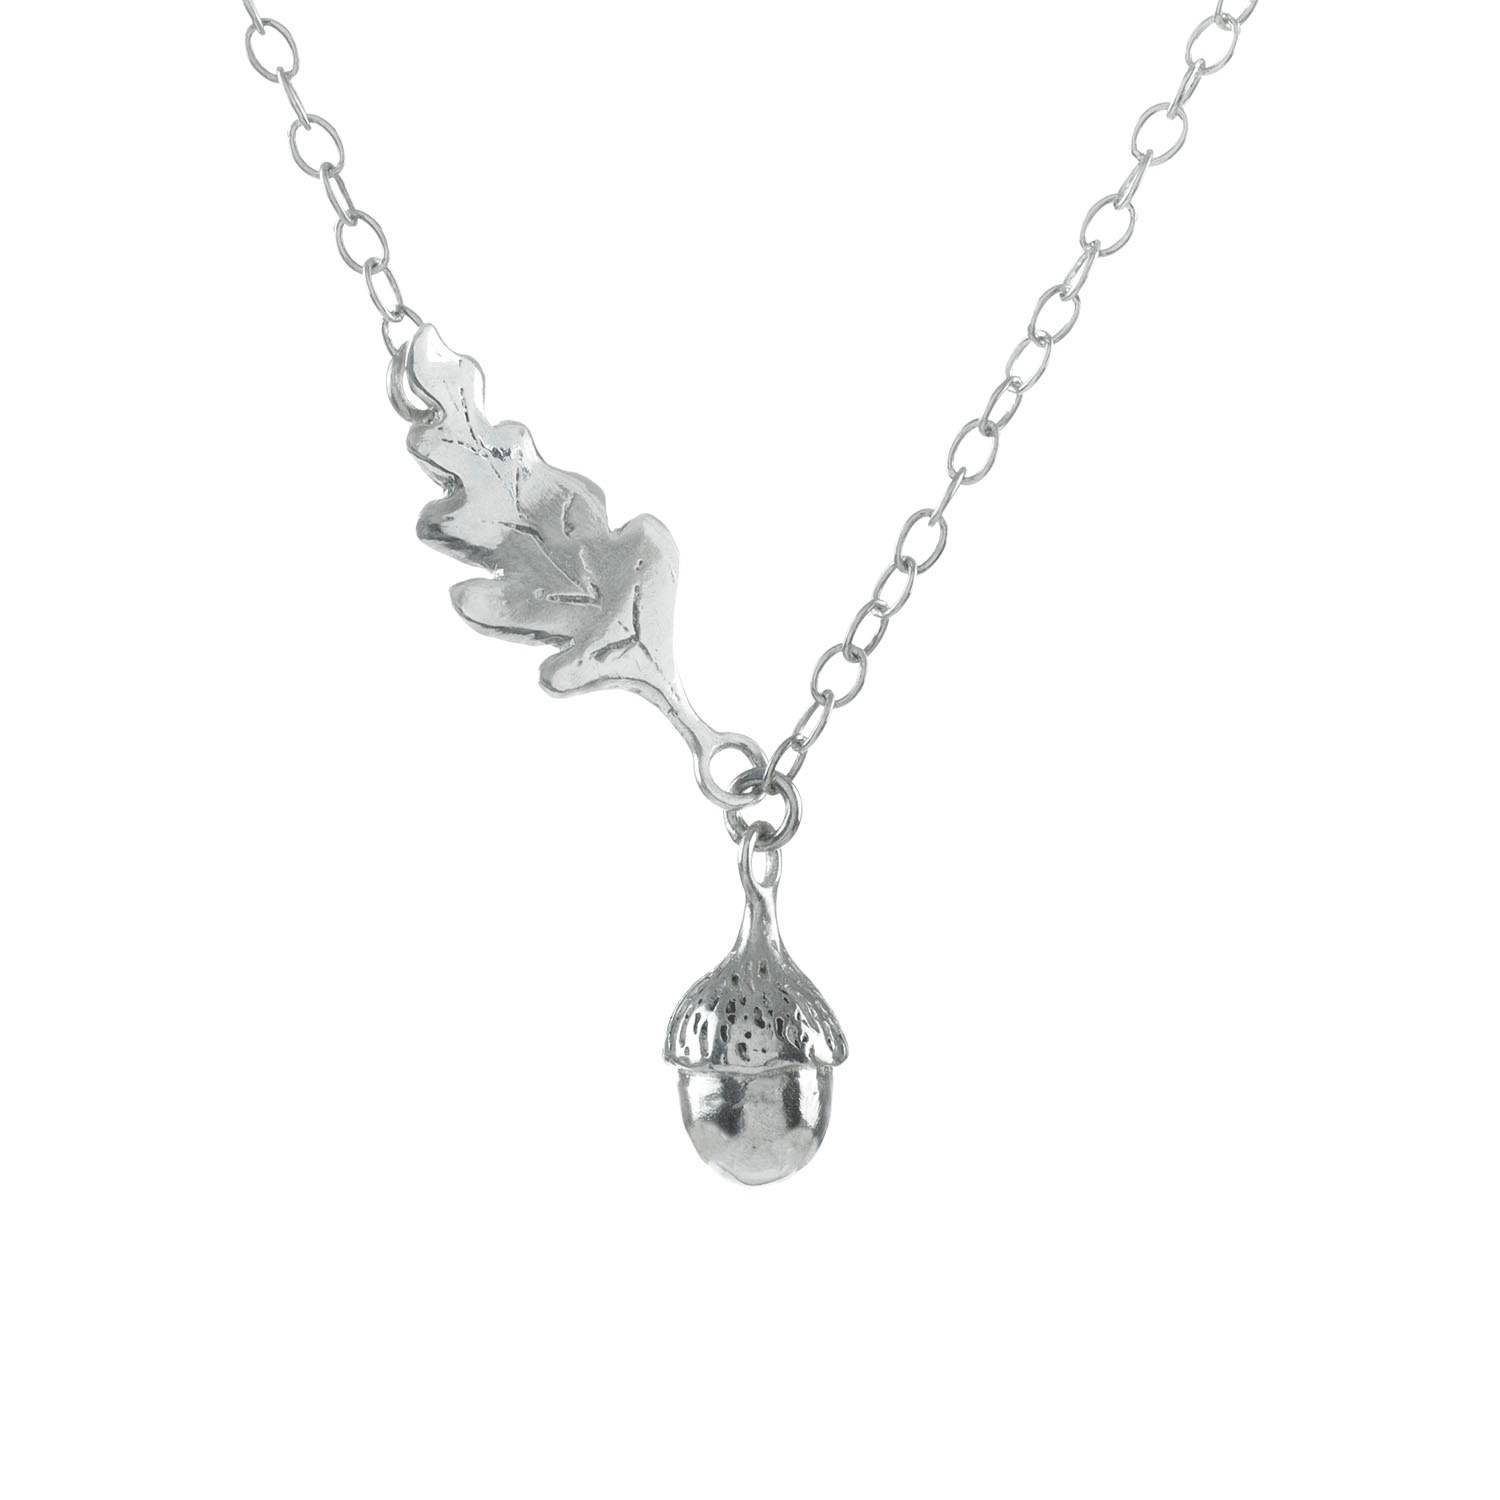 Lucy Flint Jewellery - Tiny Acorn Necklace Sterling Silver